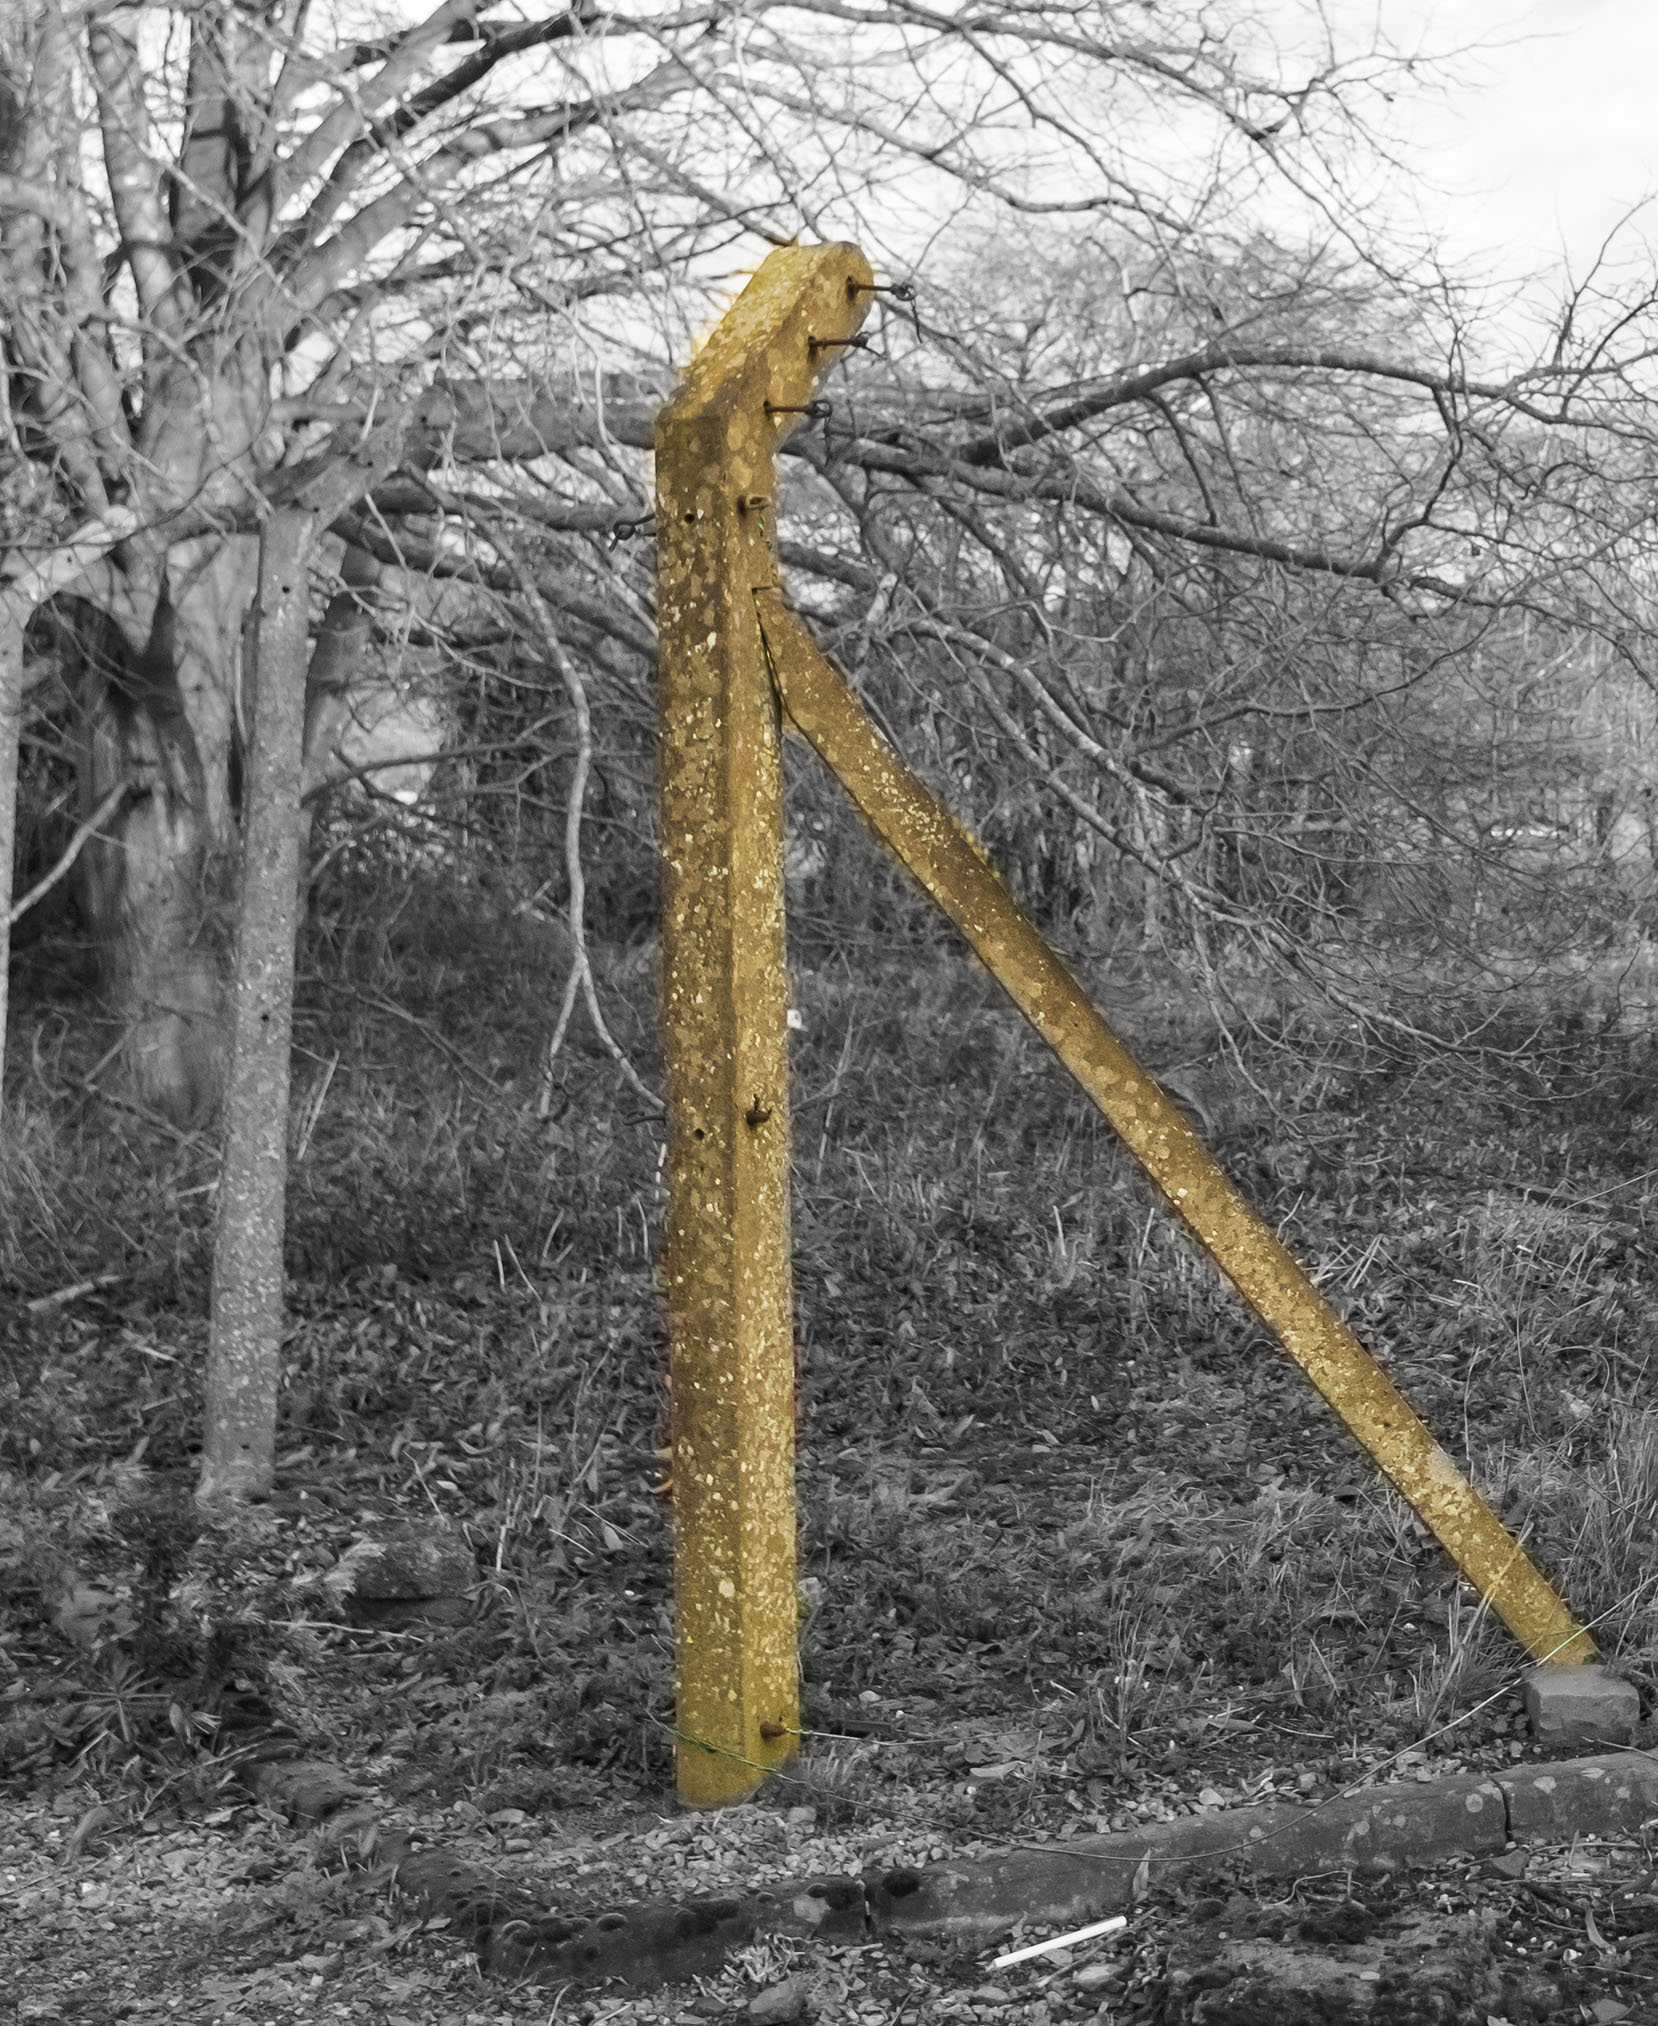 Remains of former Prisoner Of War (POW) camp at Billesdon in Leicestershire. The Camp Buildings have gone but the fences remain